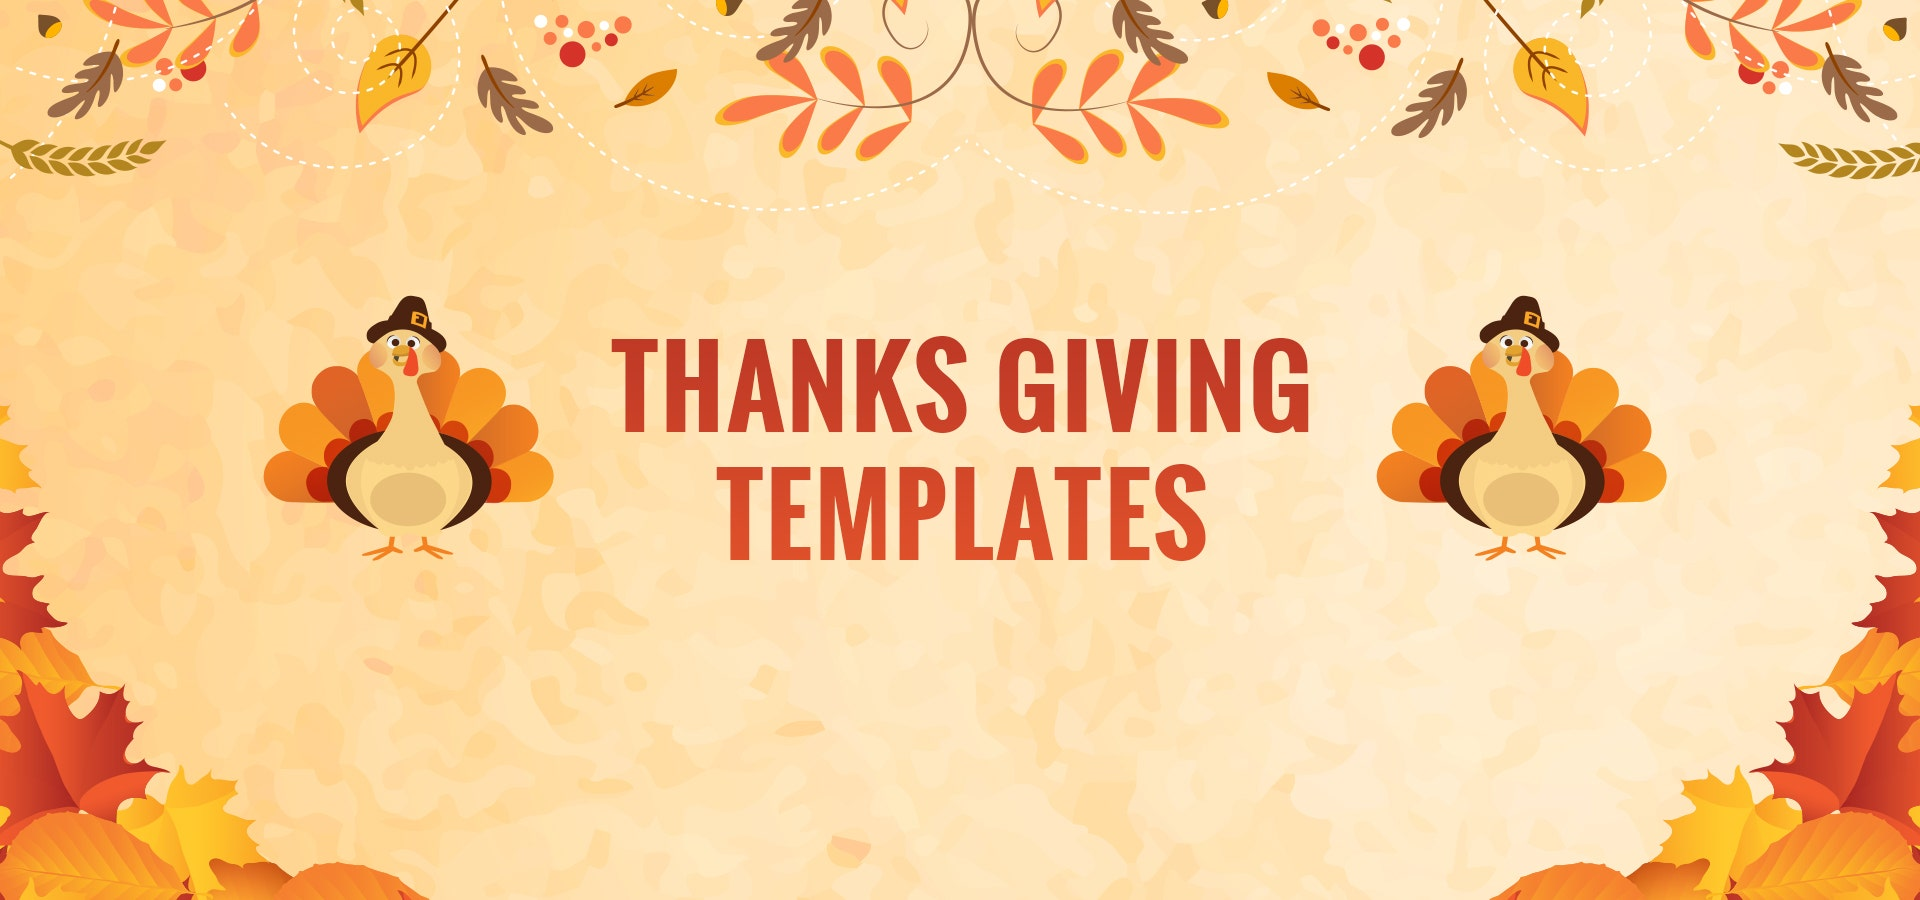 76 Printable Thanksgiving Templates